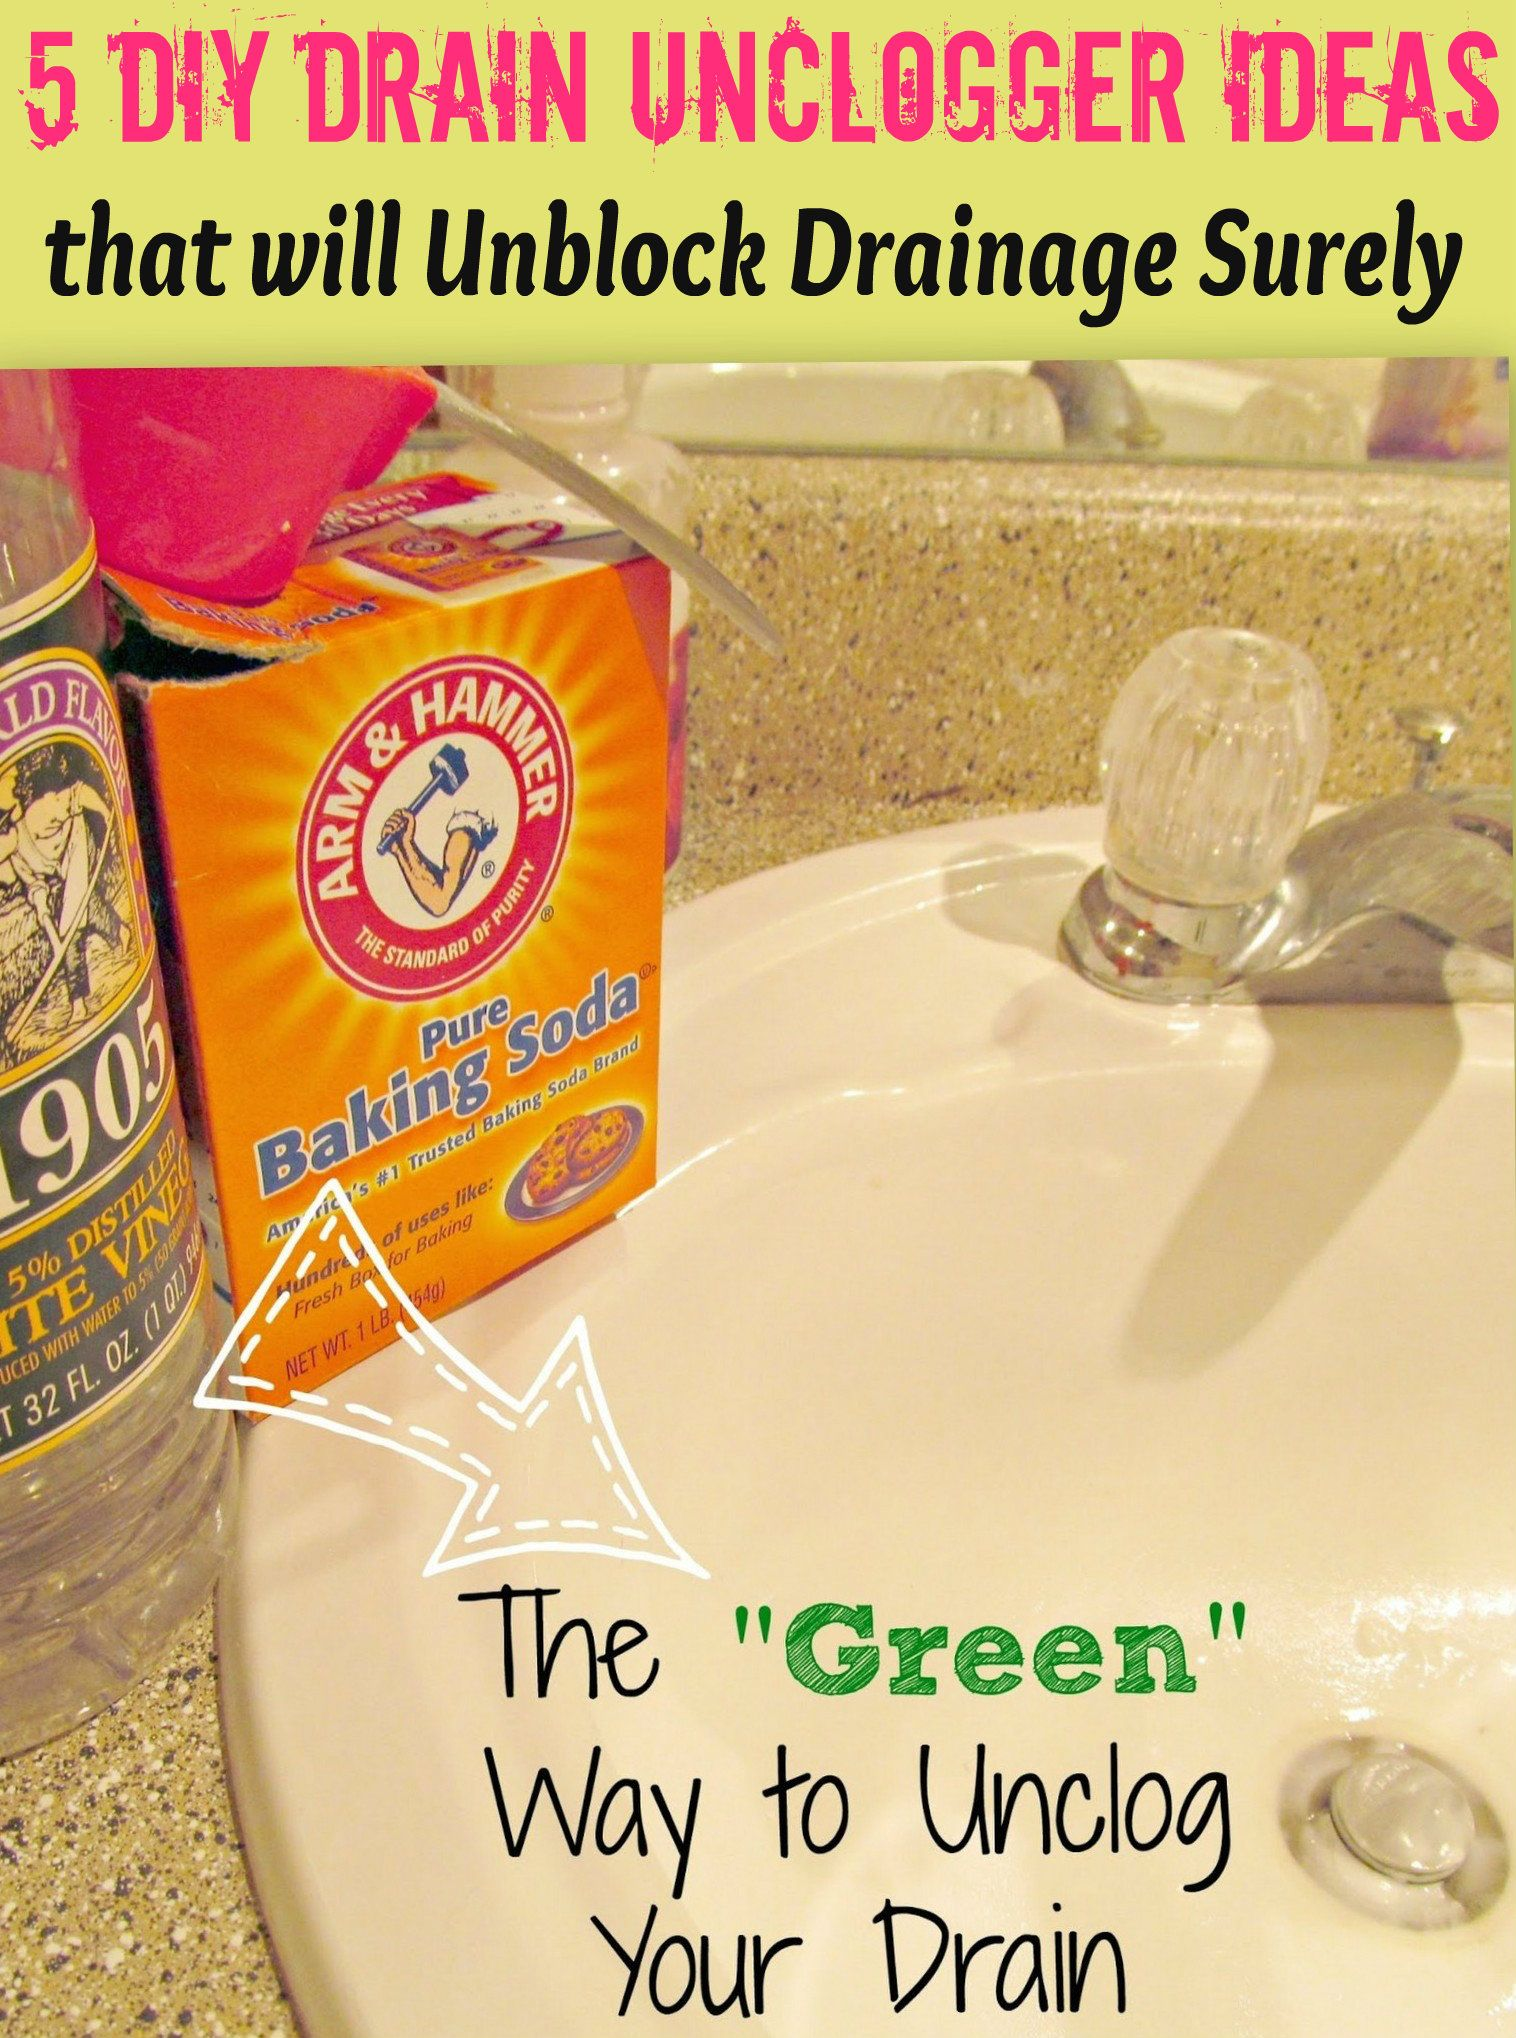 5 Easy DIY Drain Unclogging Ideas to Get Rid of a Clogged ...